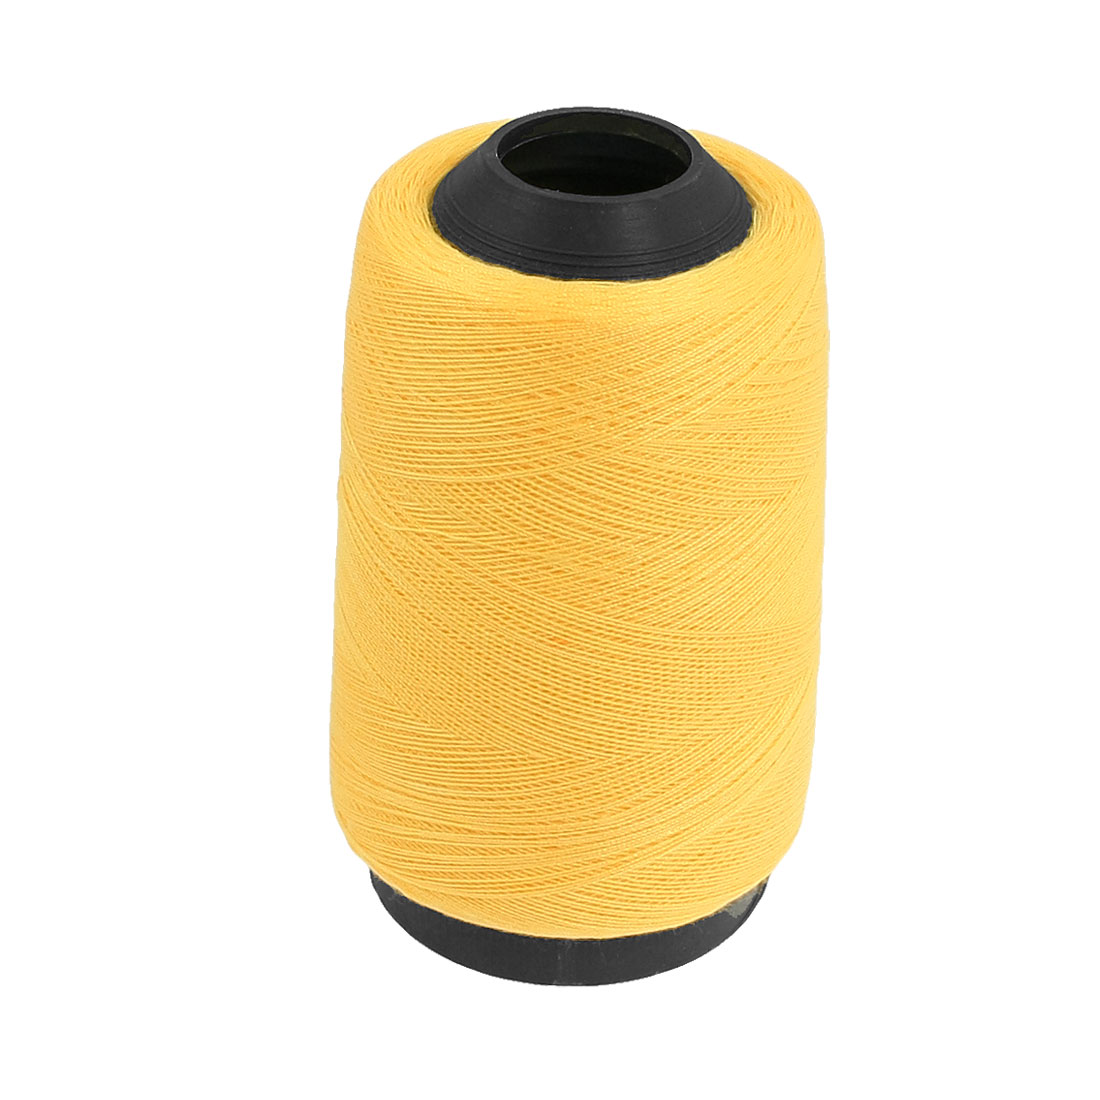 Embroidery Machine Sewing Quilting Thread String Spool Yellow